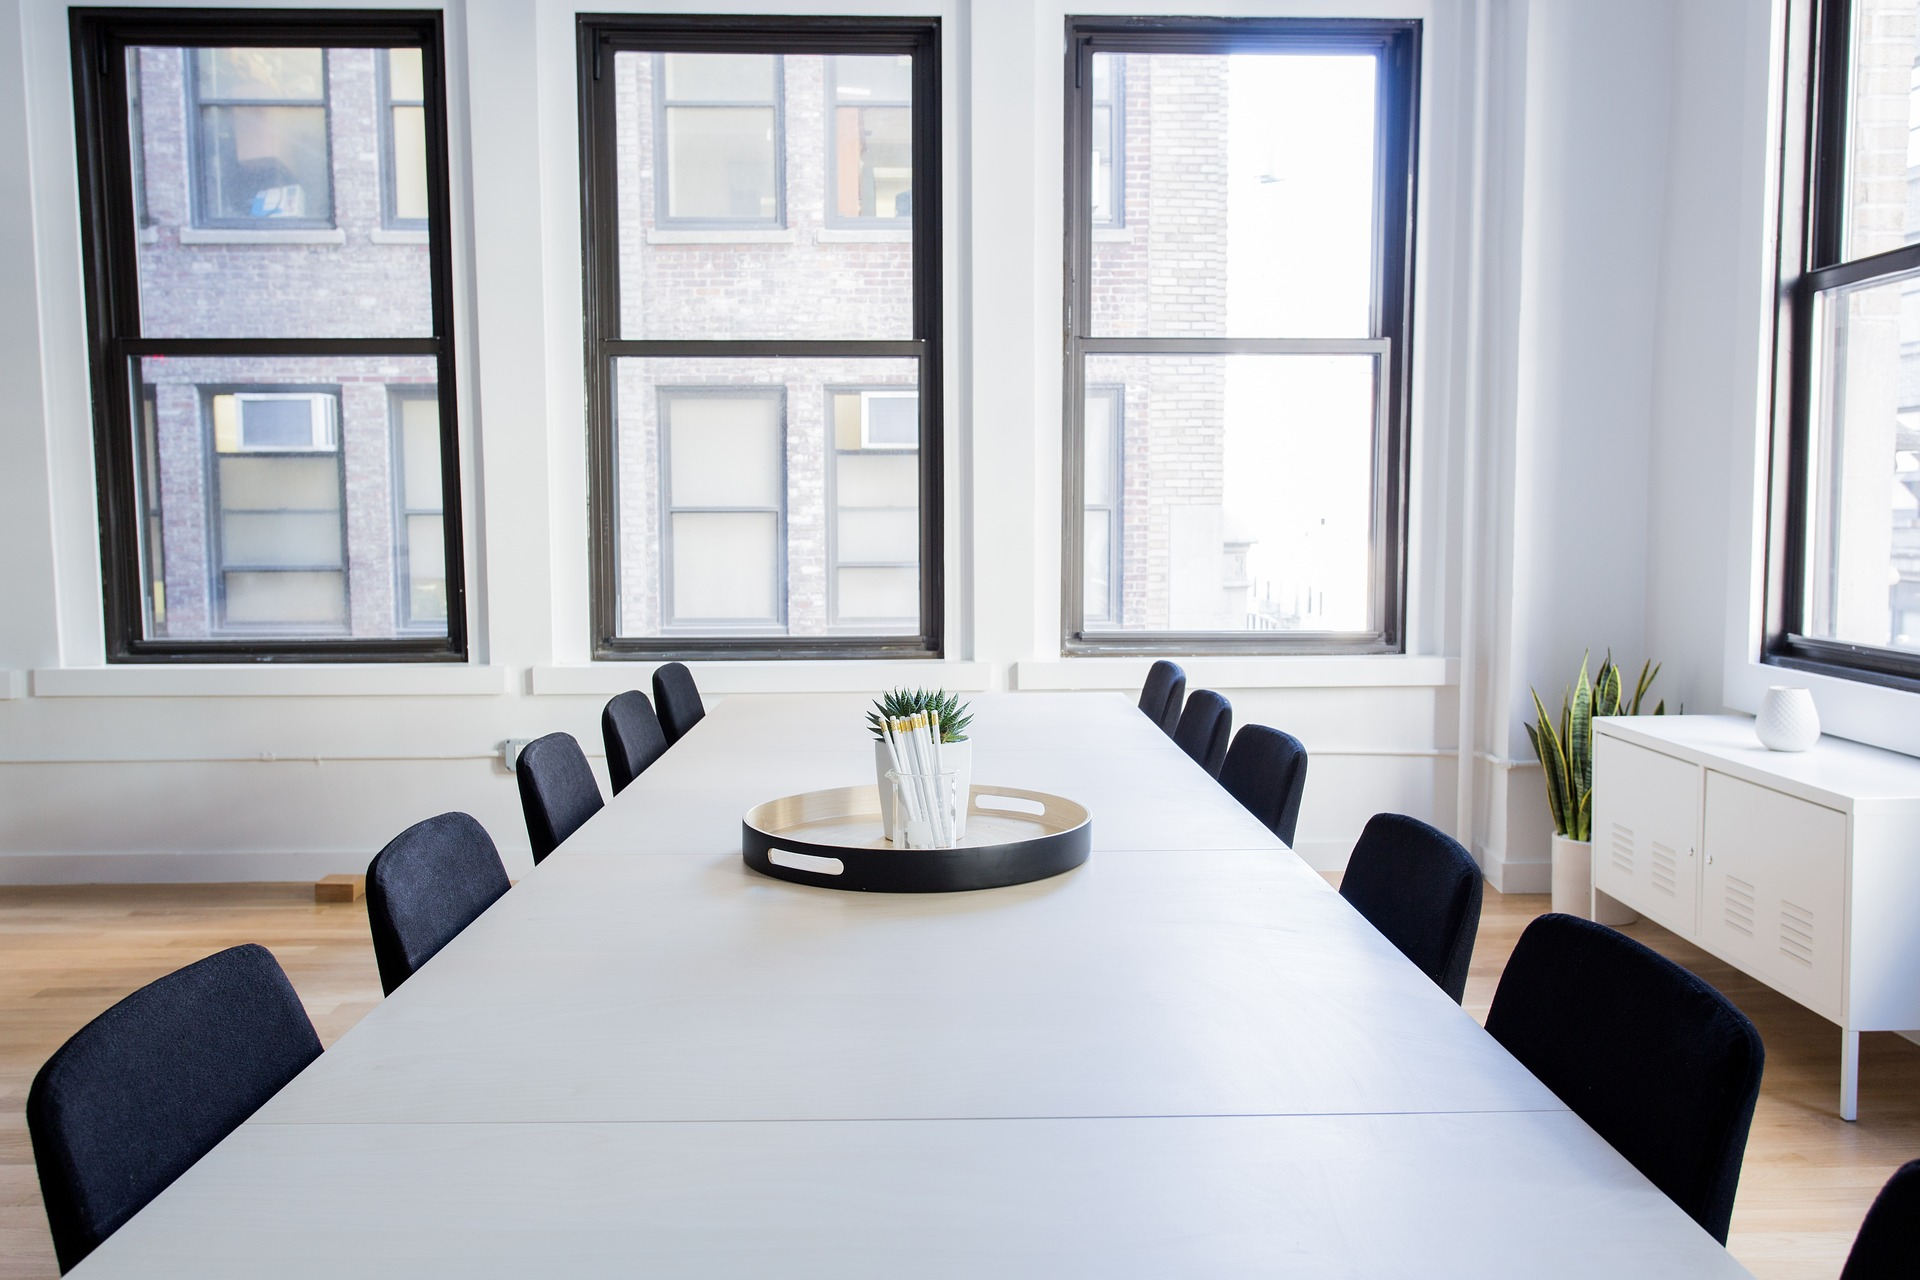 A conference room with empty chairs around a meeting table